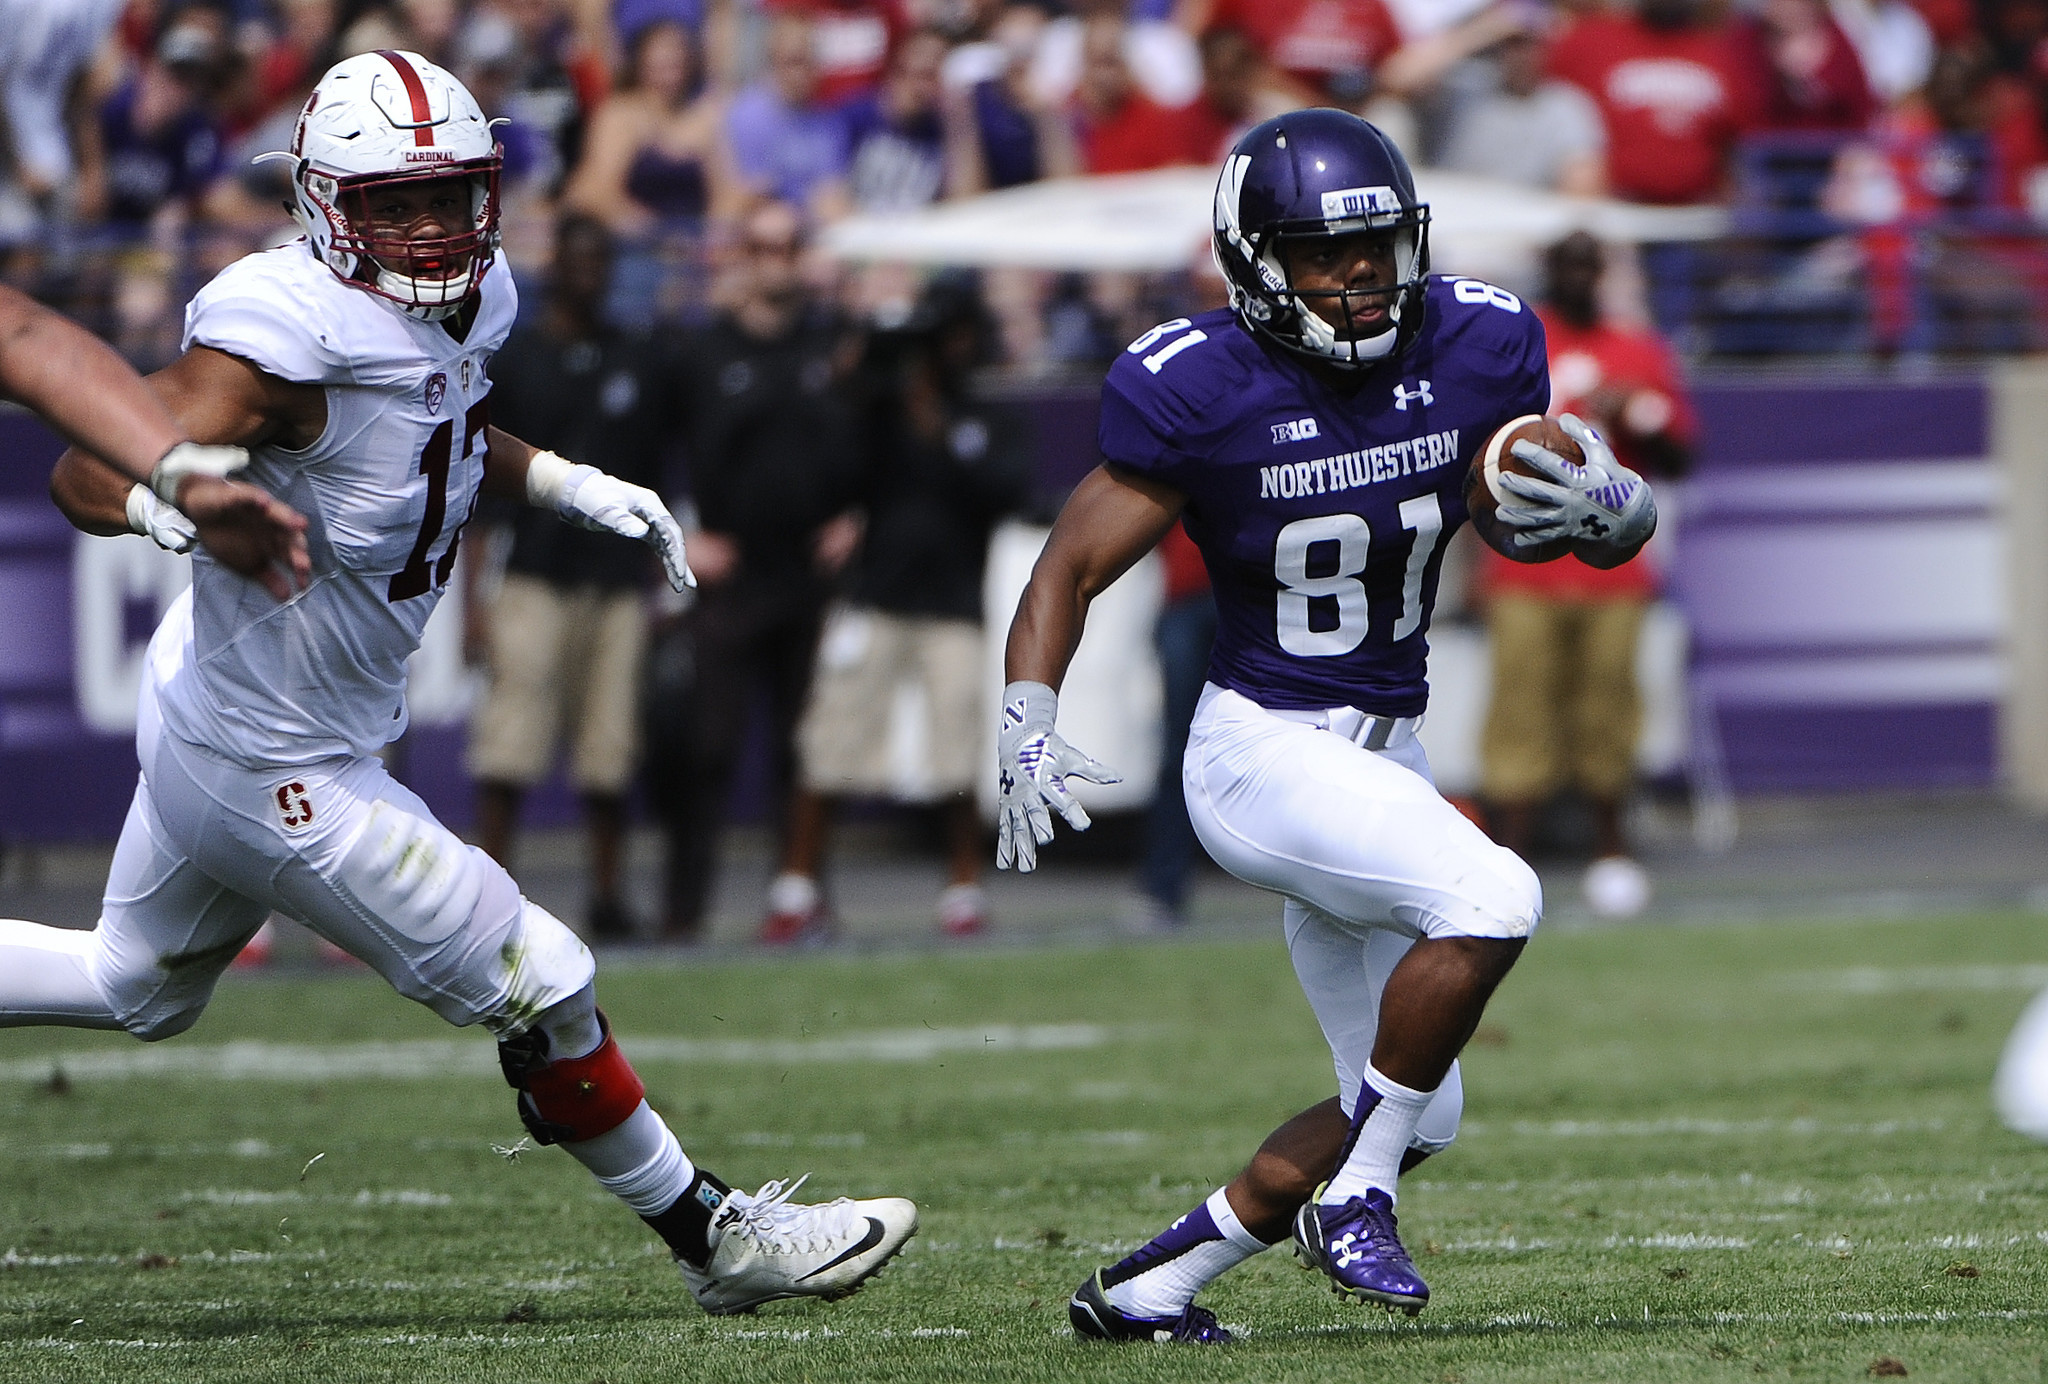 Ct-northwestern-football-spring-practice-storylines-spt-0222-20170221